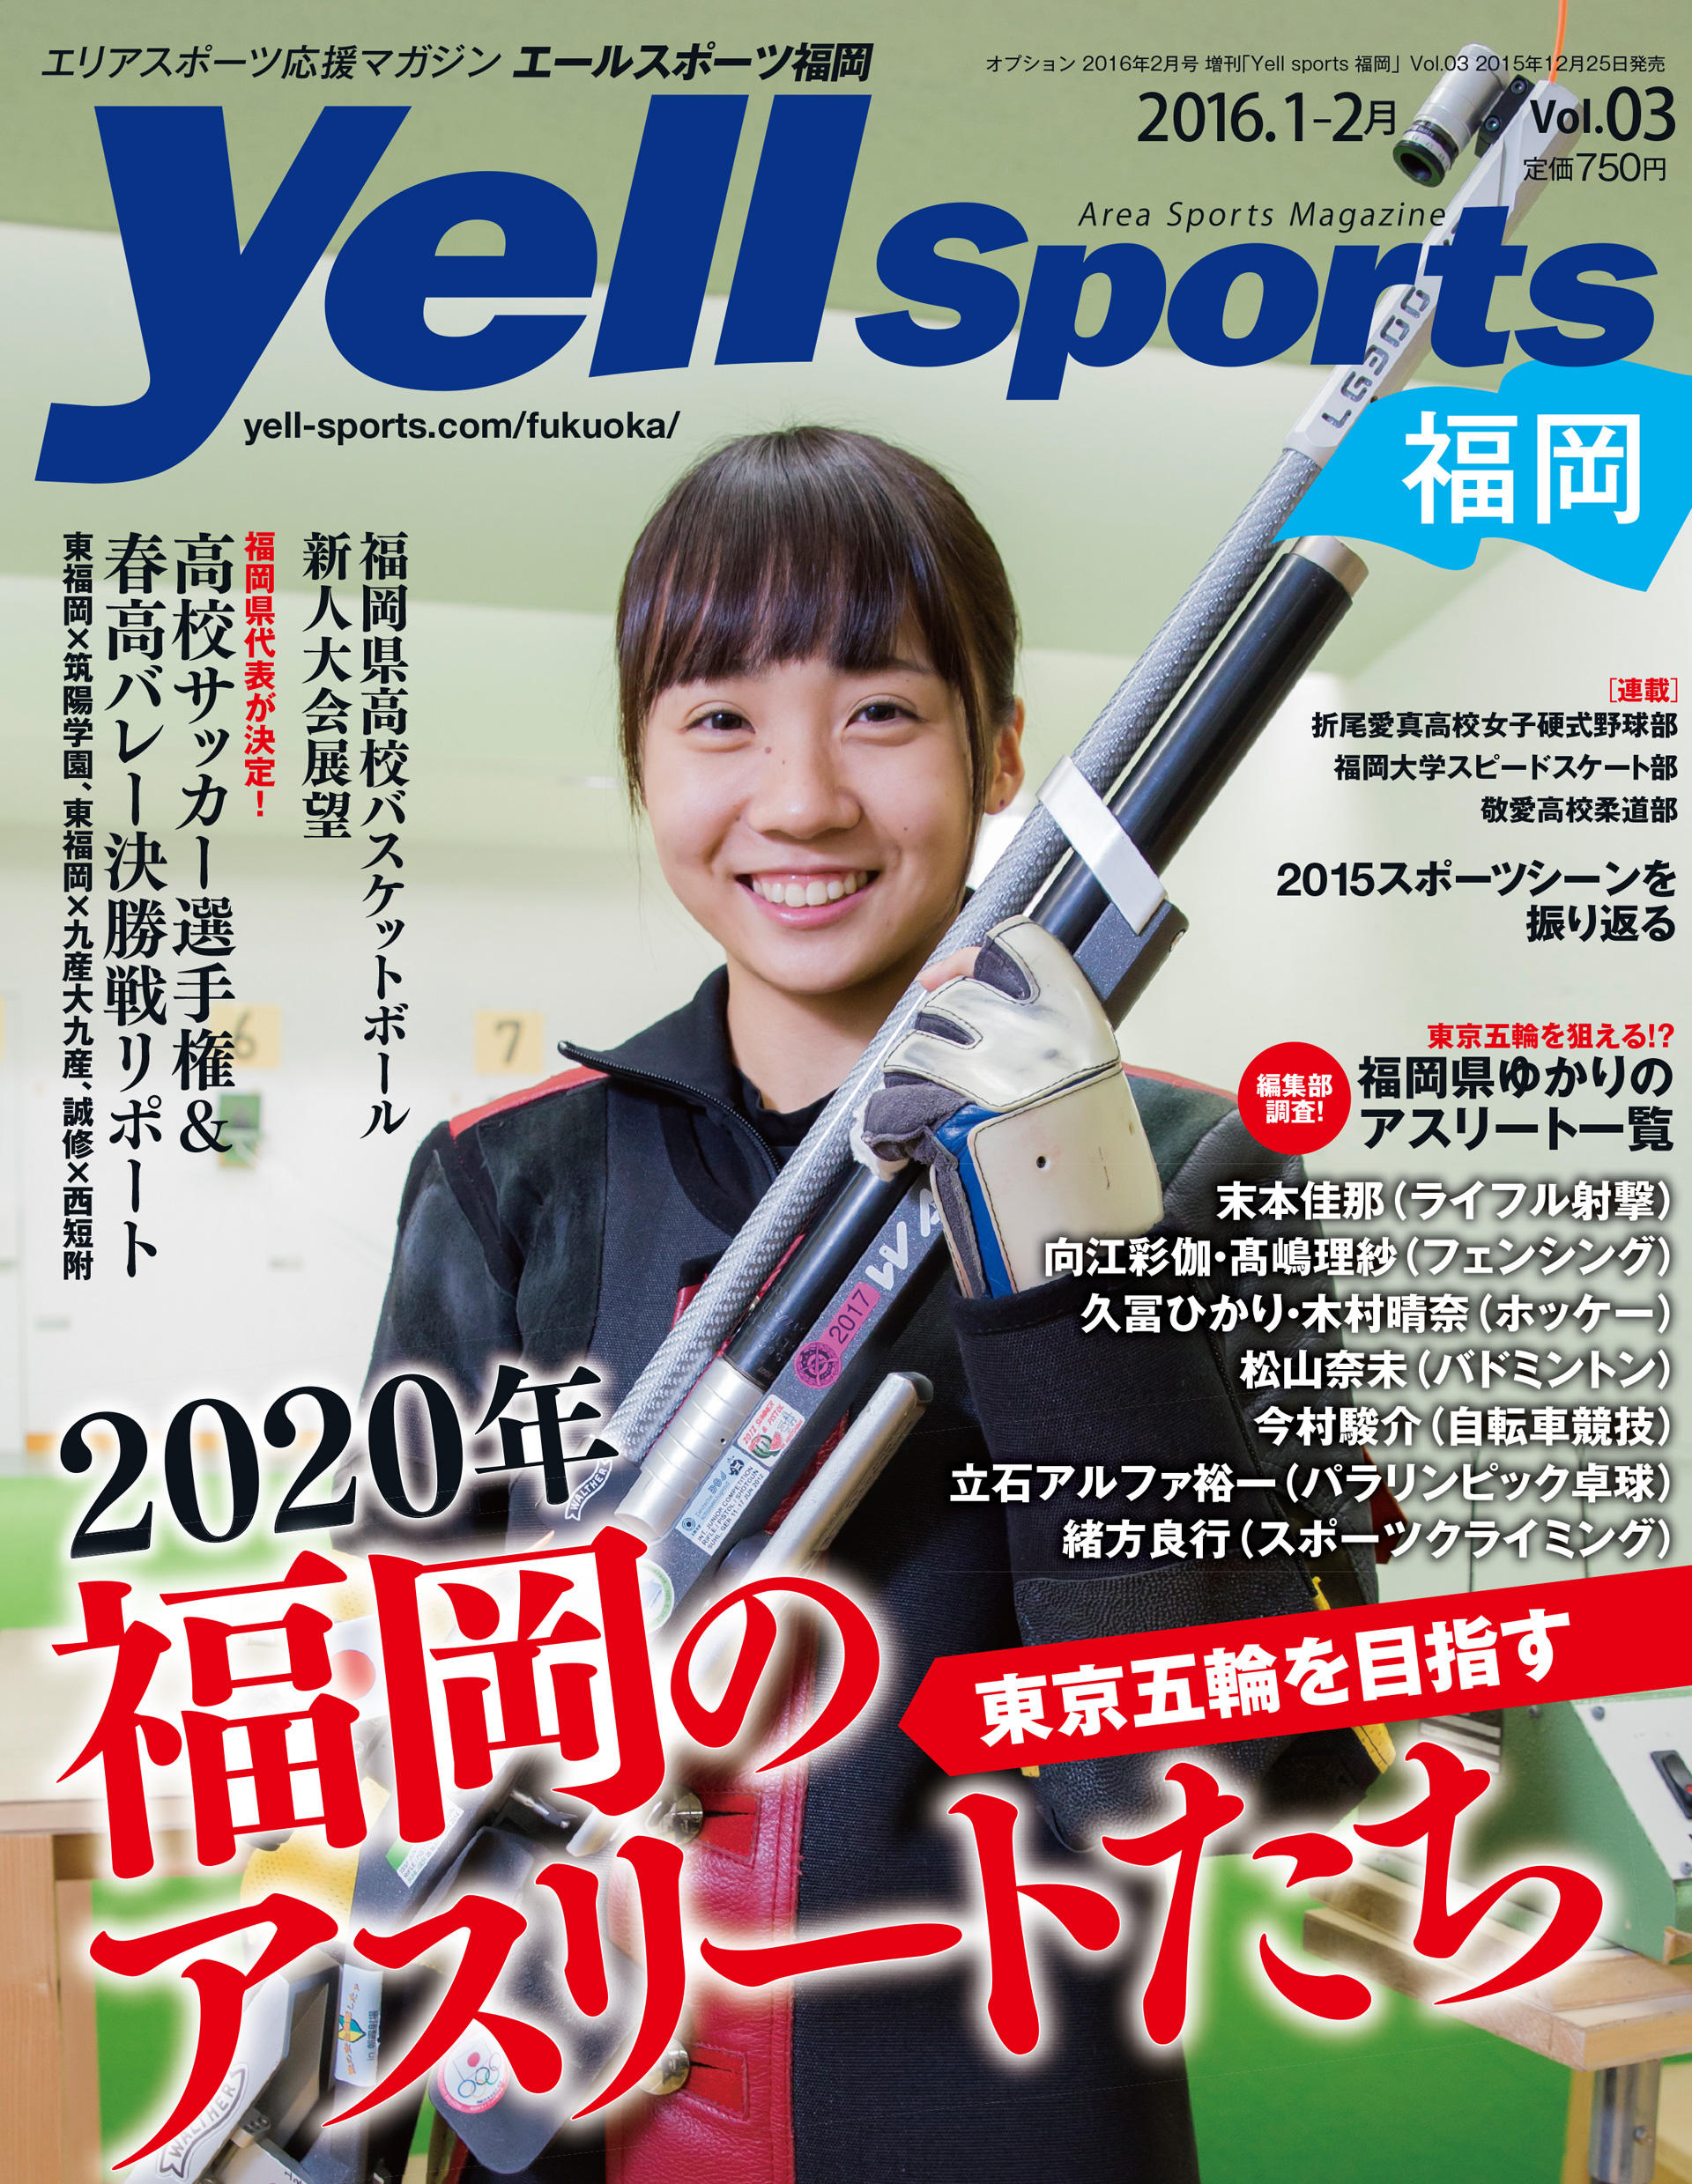 http://yell-sports.com/fukuoka/article/2016/ysf03_h01.jpg